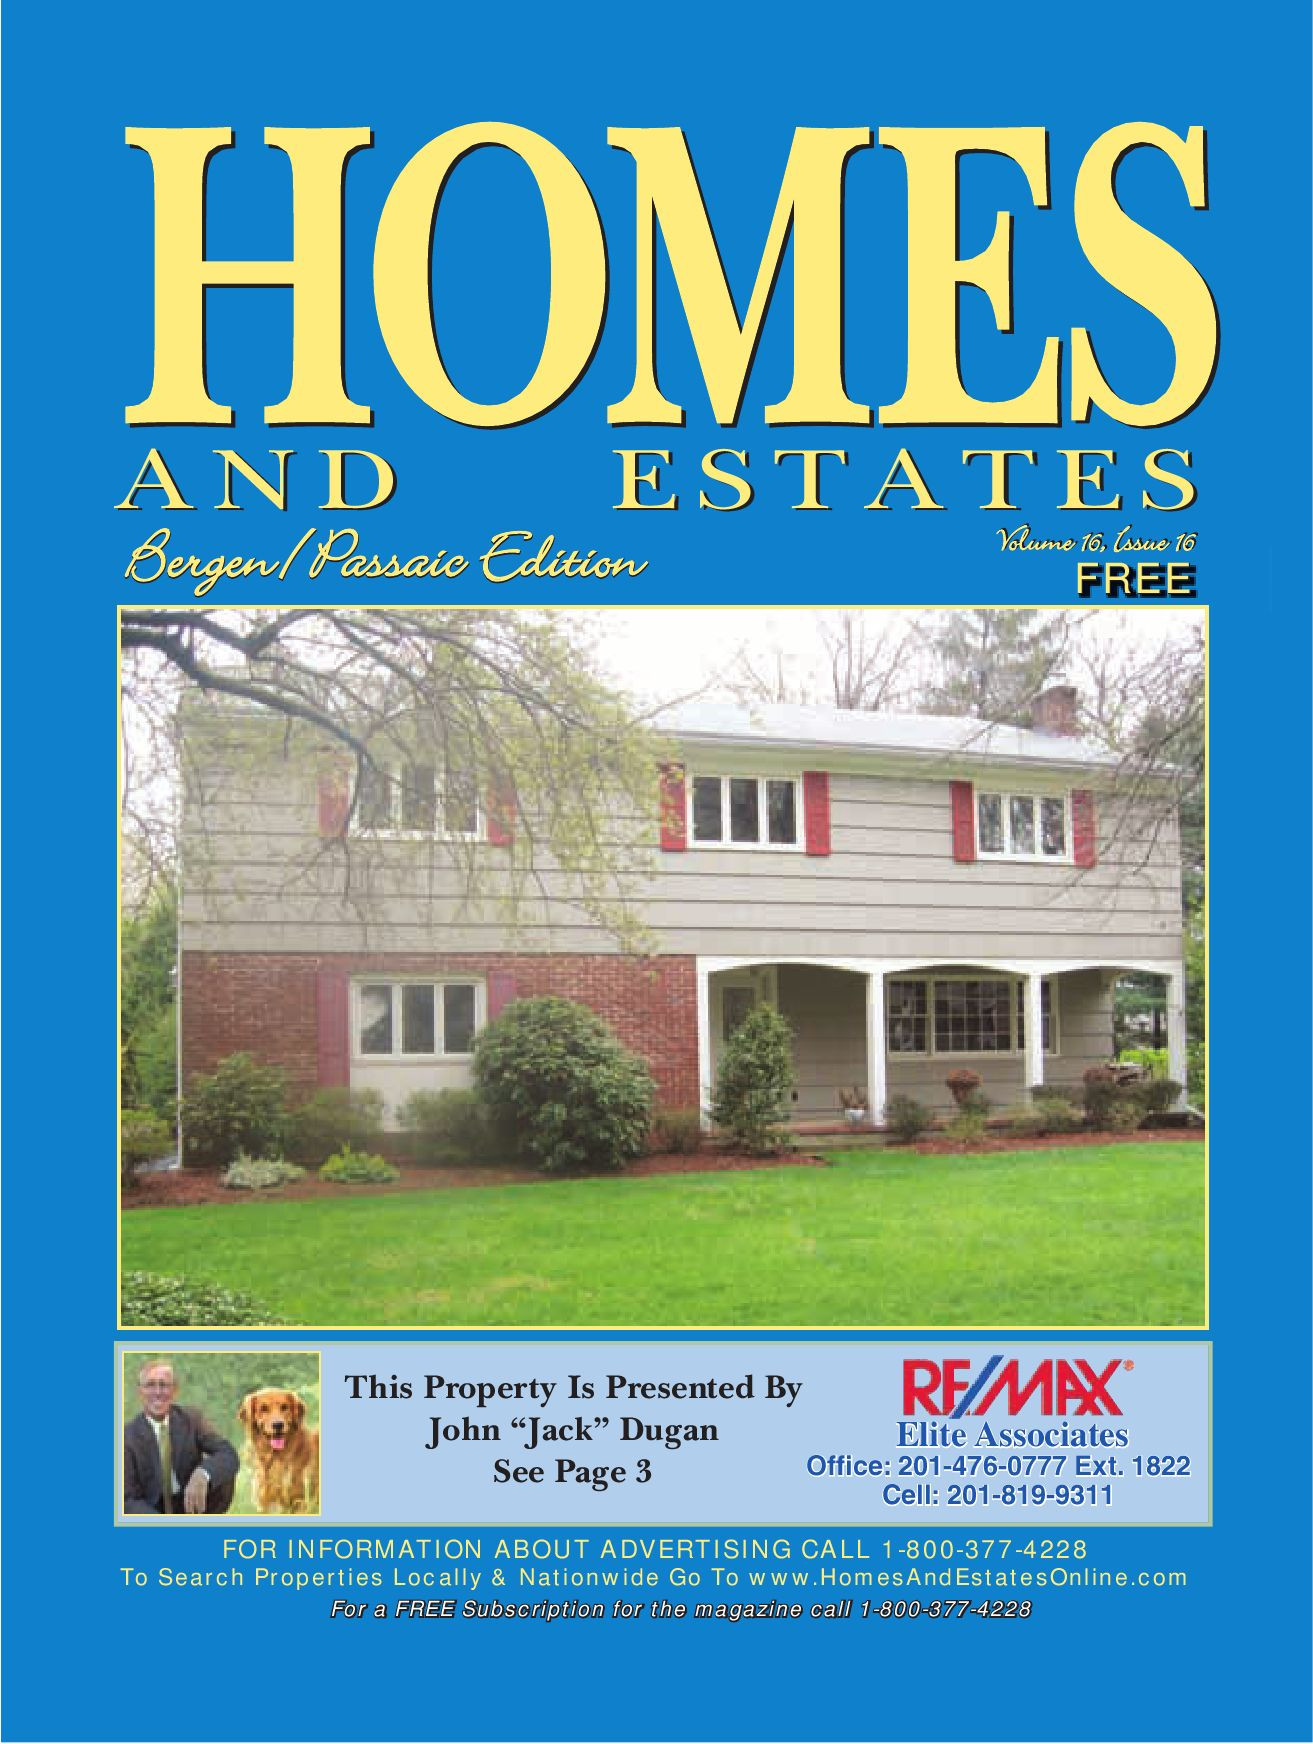 Pc Hardwood Floors Hillburn Ny Of Homes and Estates Magazine Bergen Passaic Nj by Gene Petraglia issuu Inside Page 1